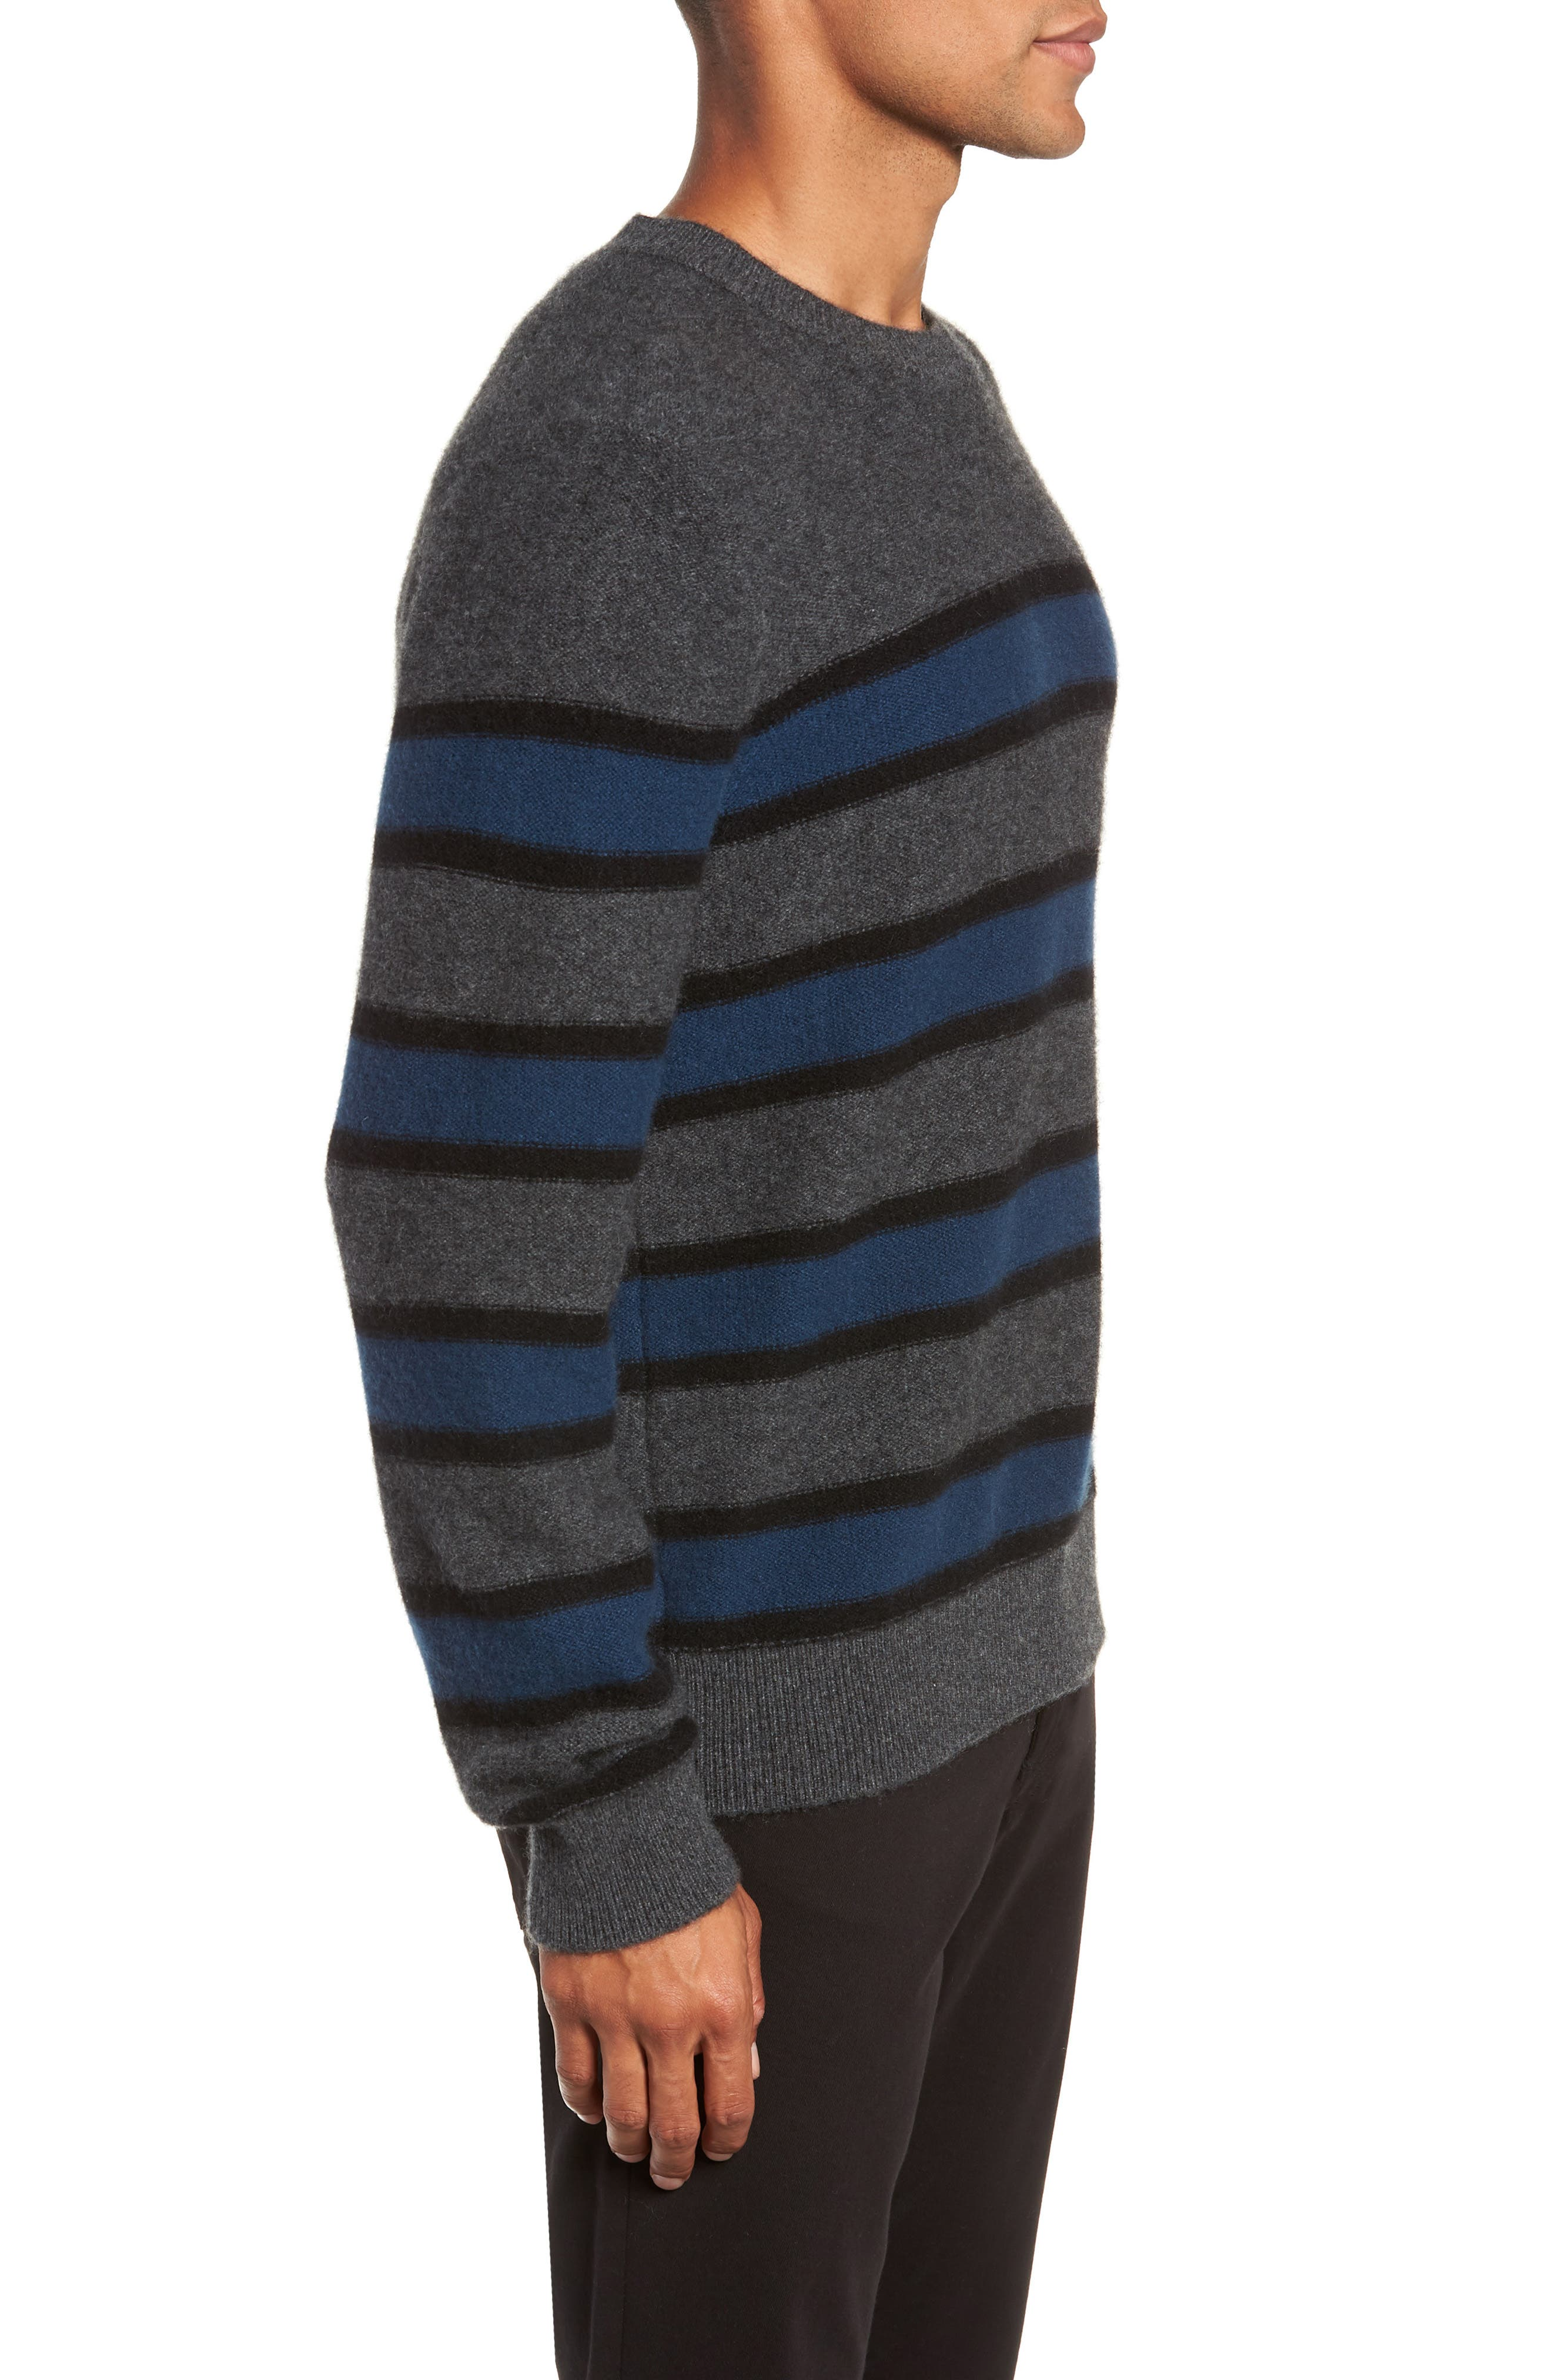 Regular Fit Stripe Cashmere Sweater,                             Alternate thumbnail 3, color,                             DARK HEATHER GREY/BLUE